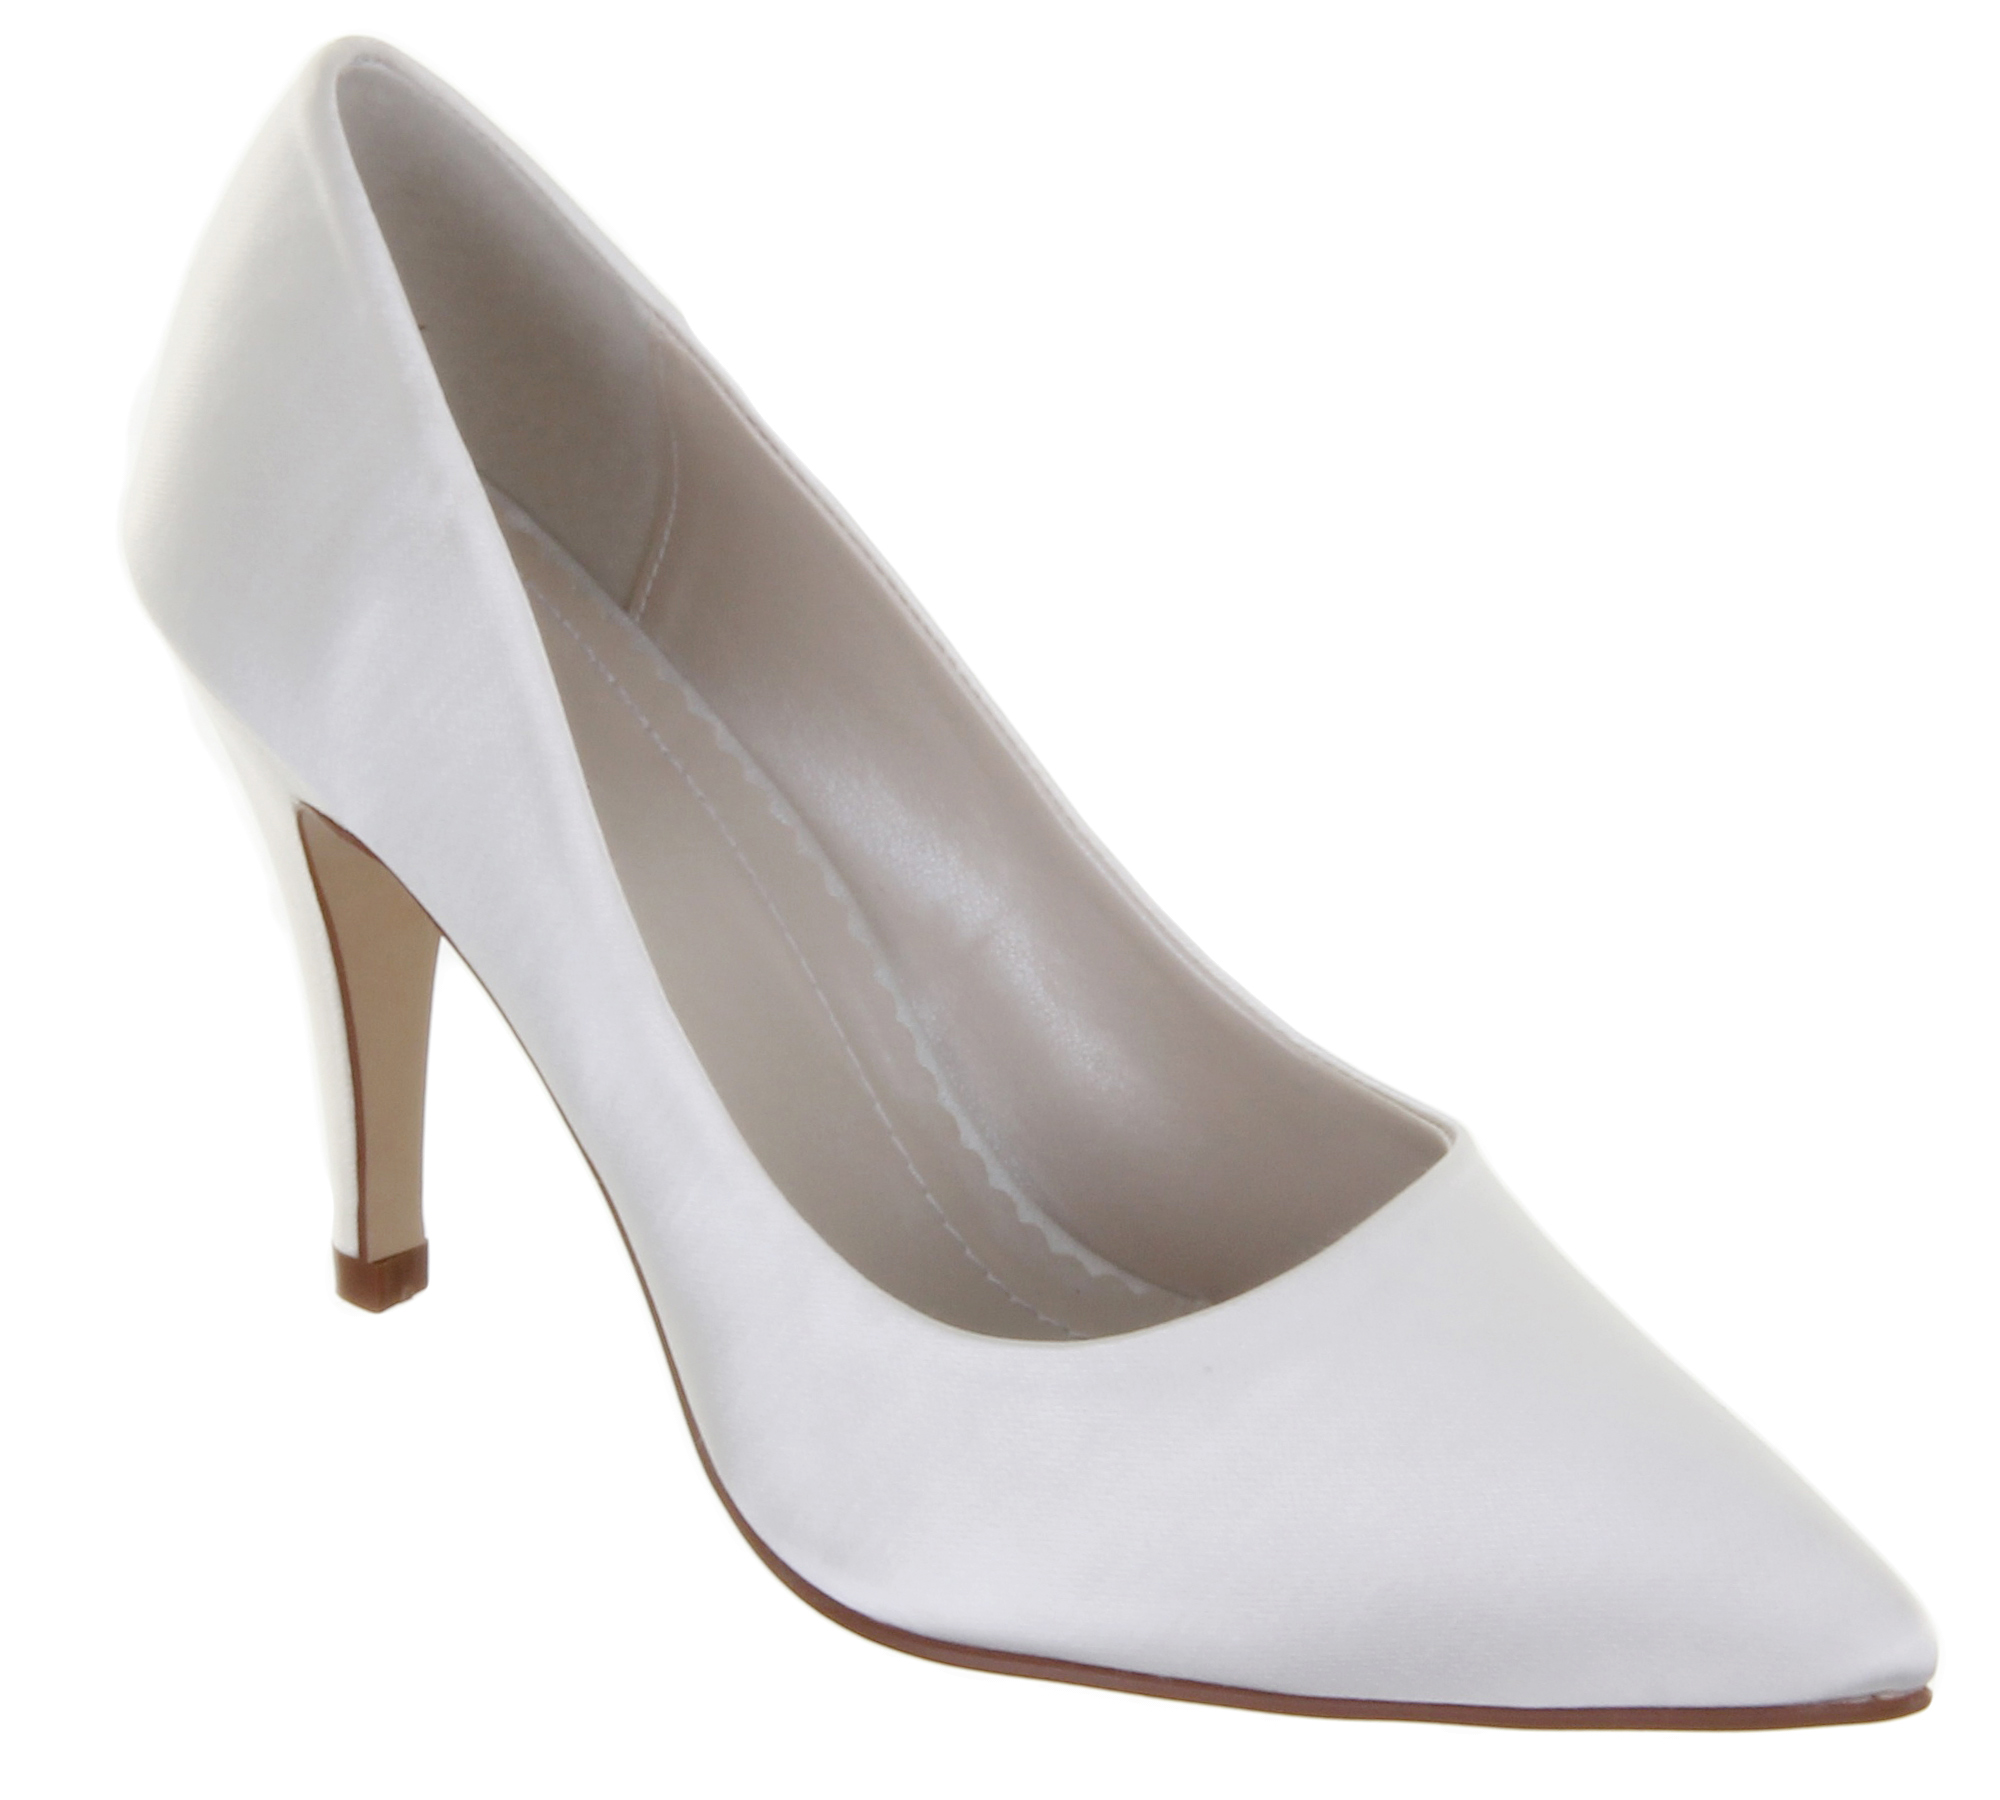 Ivory Satin Wedding Shoes With Front Strap